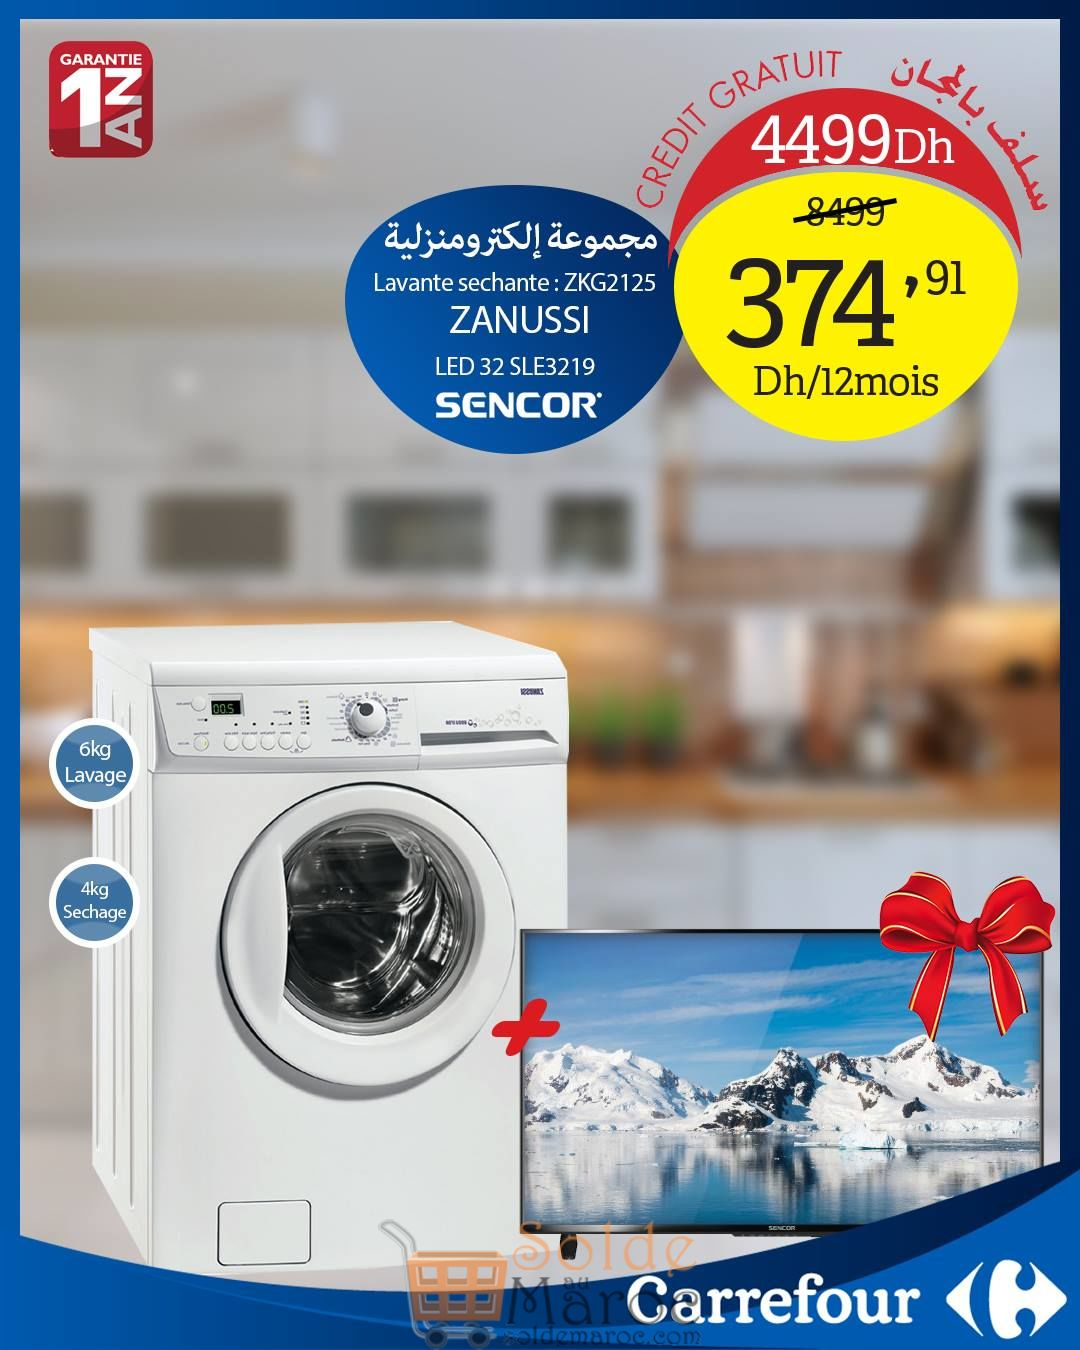 promo carrefour maroc lave linge tv led 4499dhs. Black Bedroom Furniture Sets. Home Design Ideas